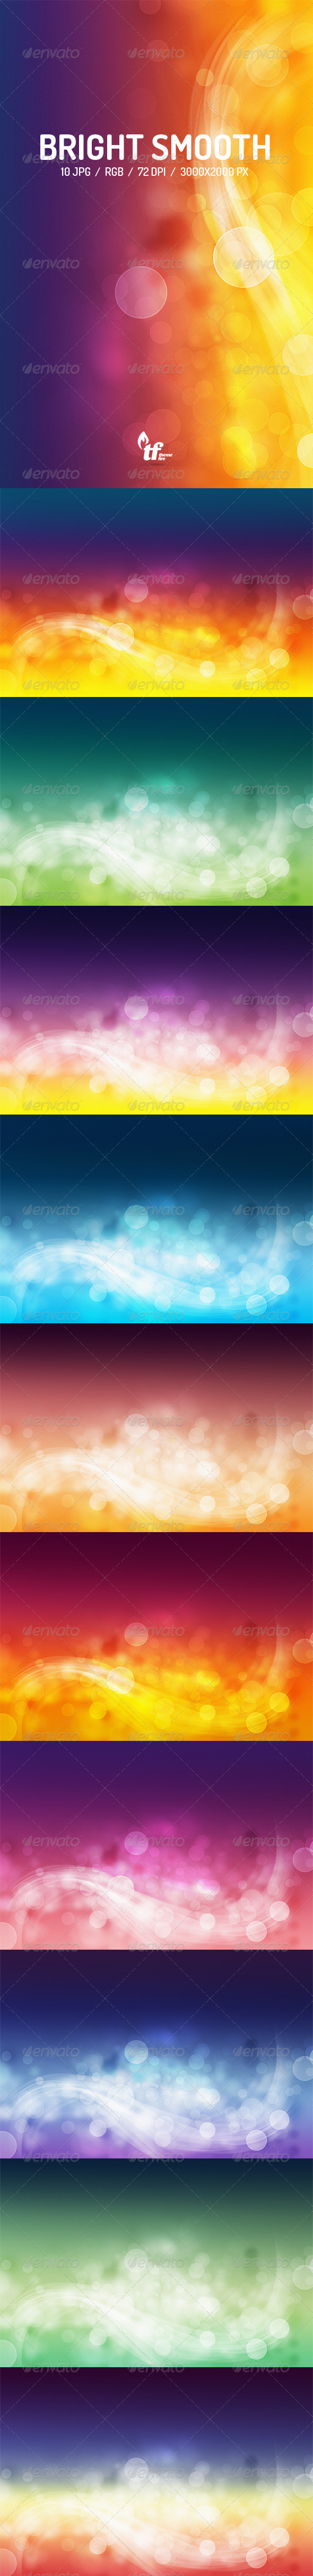 GraphicRiver Abstract Bright Smooth Backgrounds 8428096